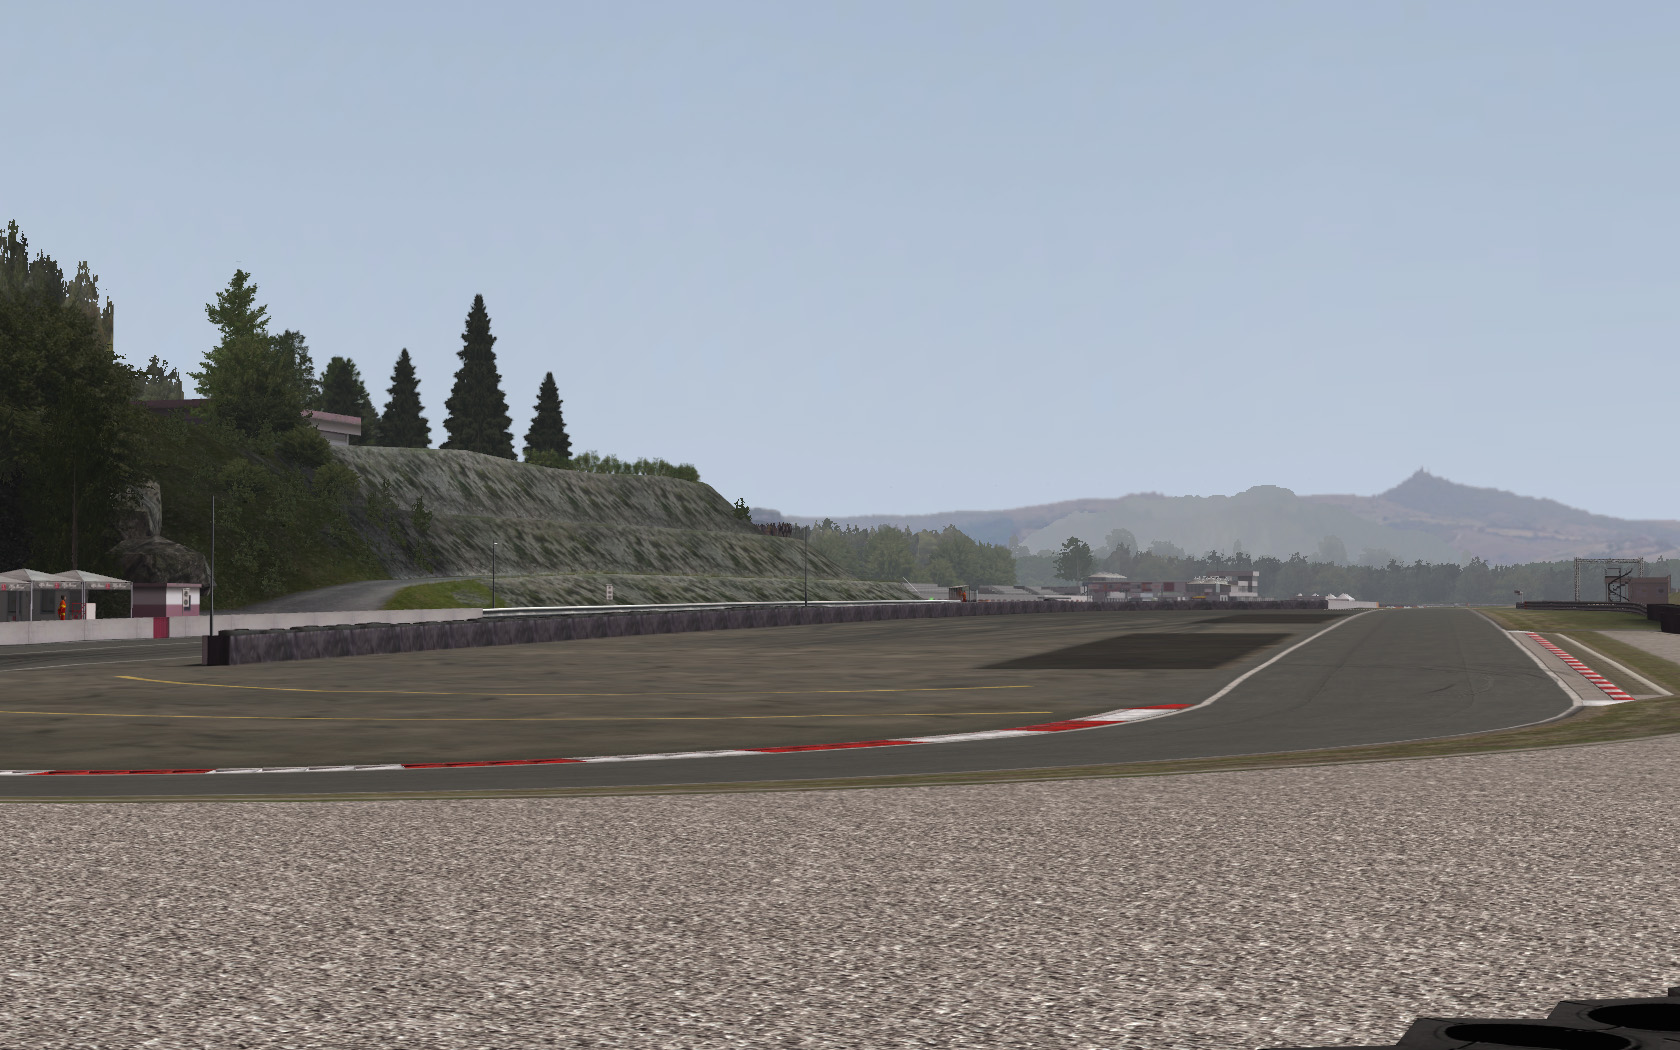 sardinia heights gtr2 mods - photo#26